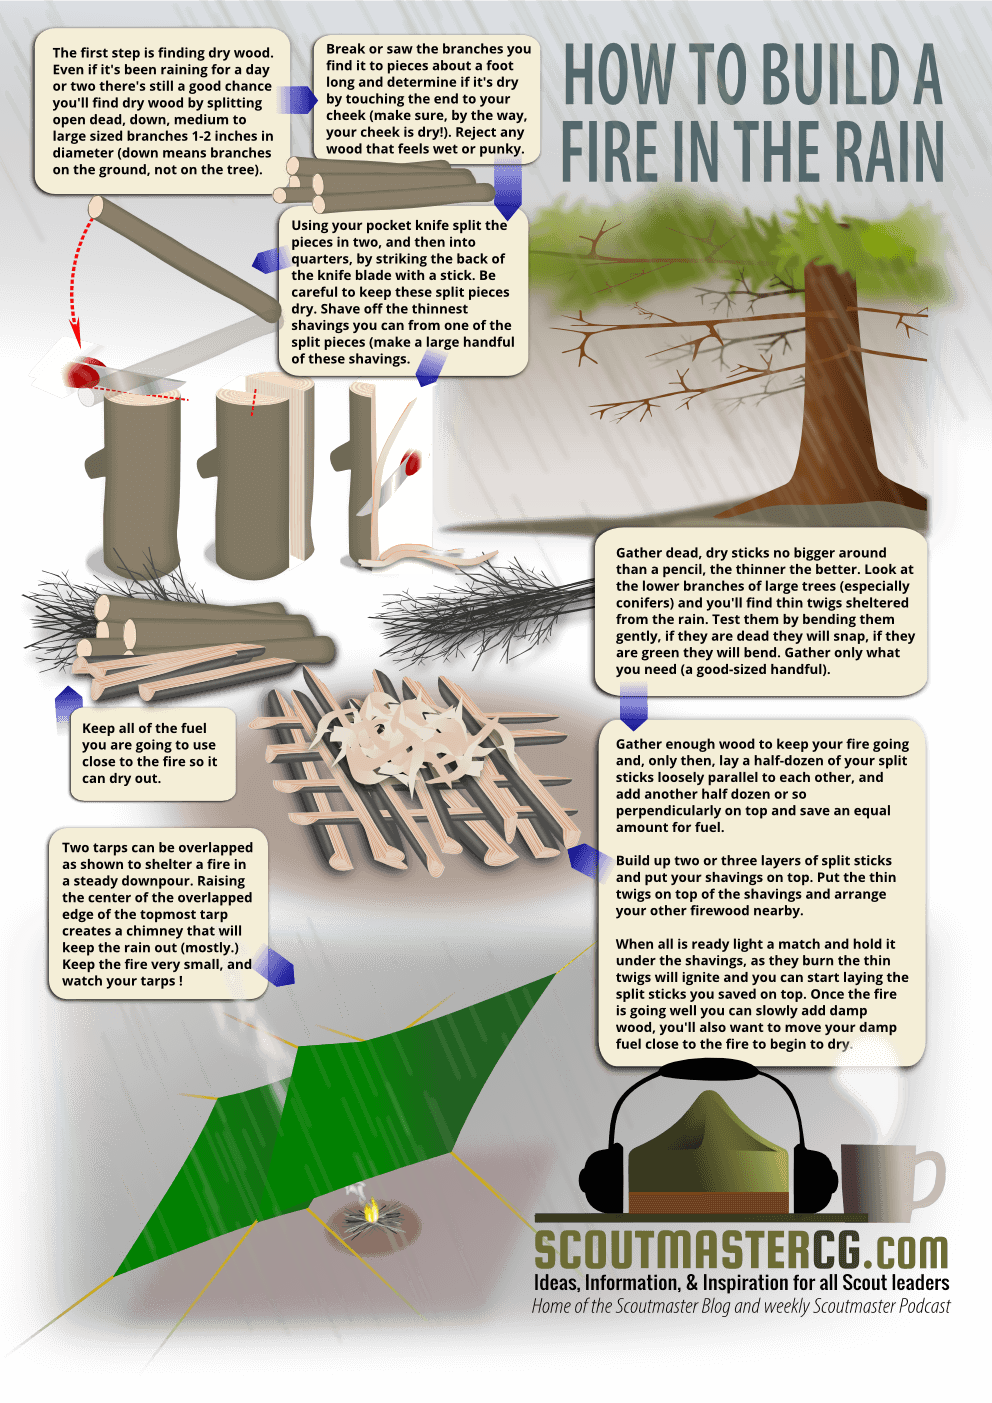 How to build a fire in the rain infographic